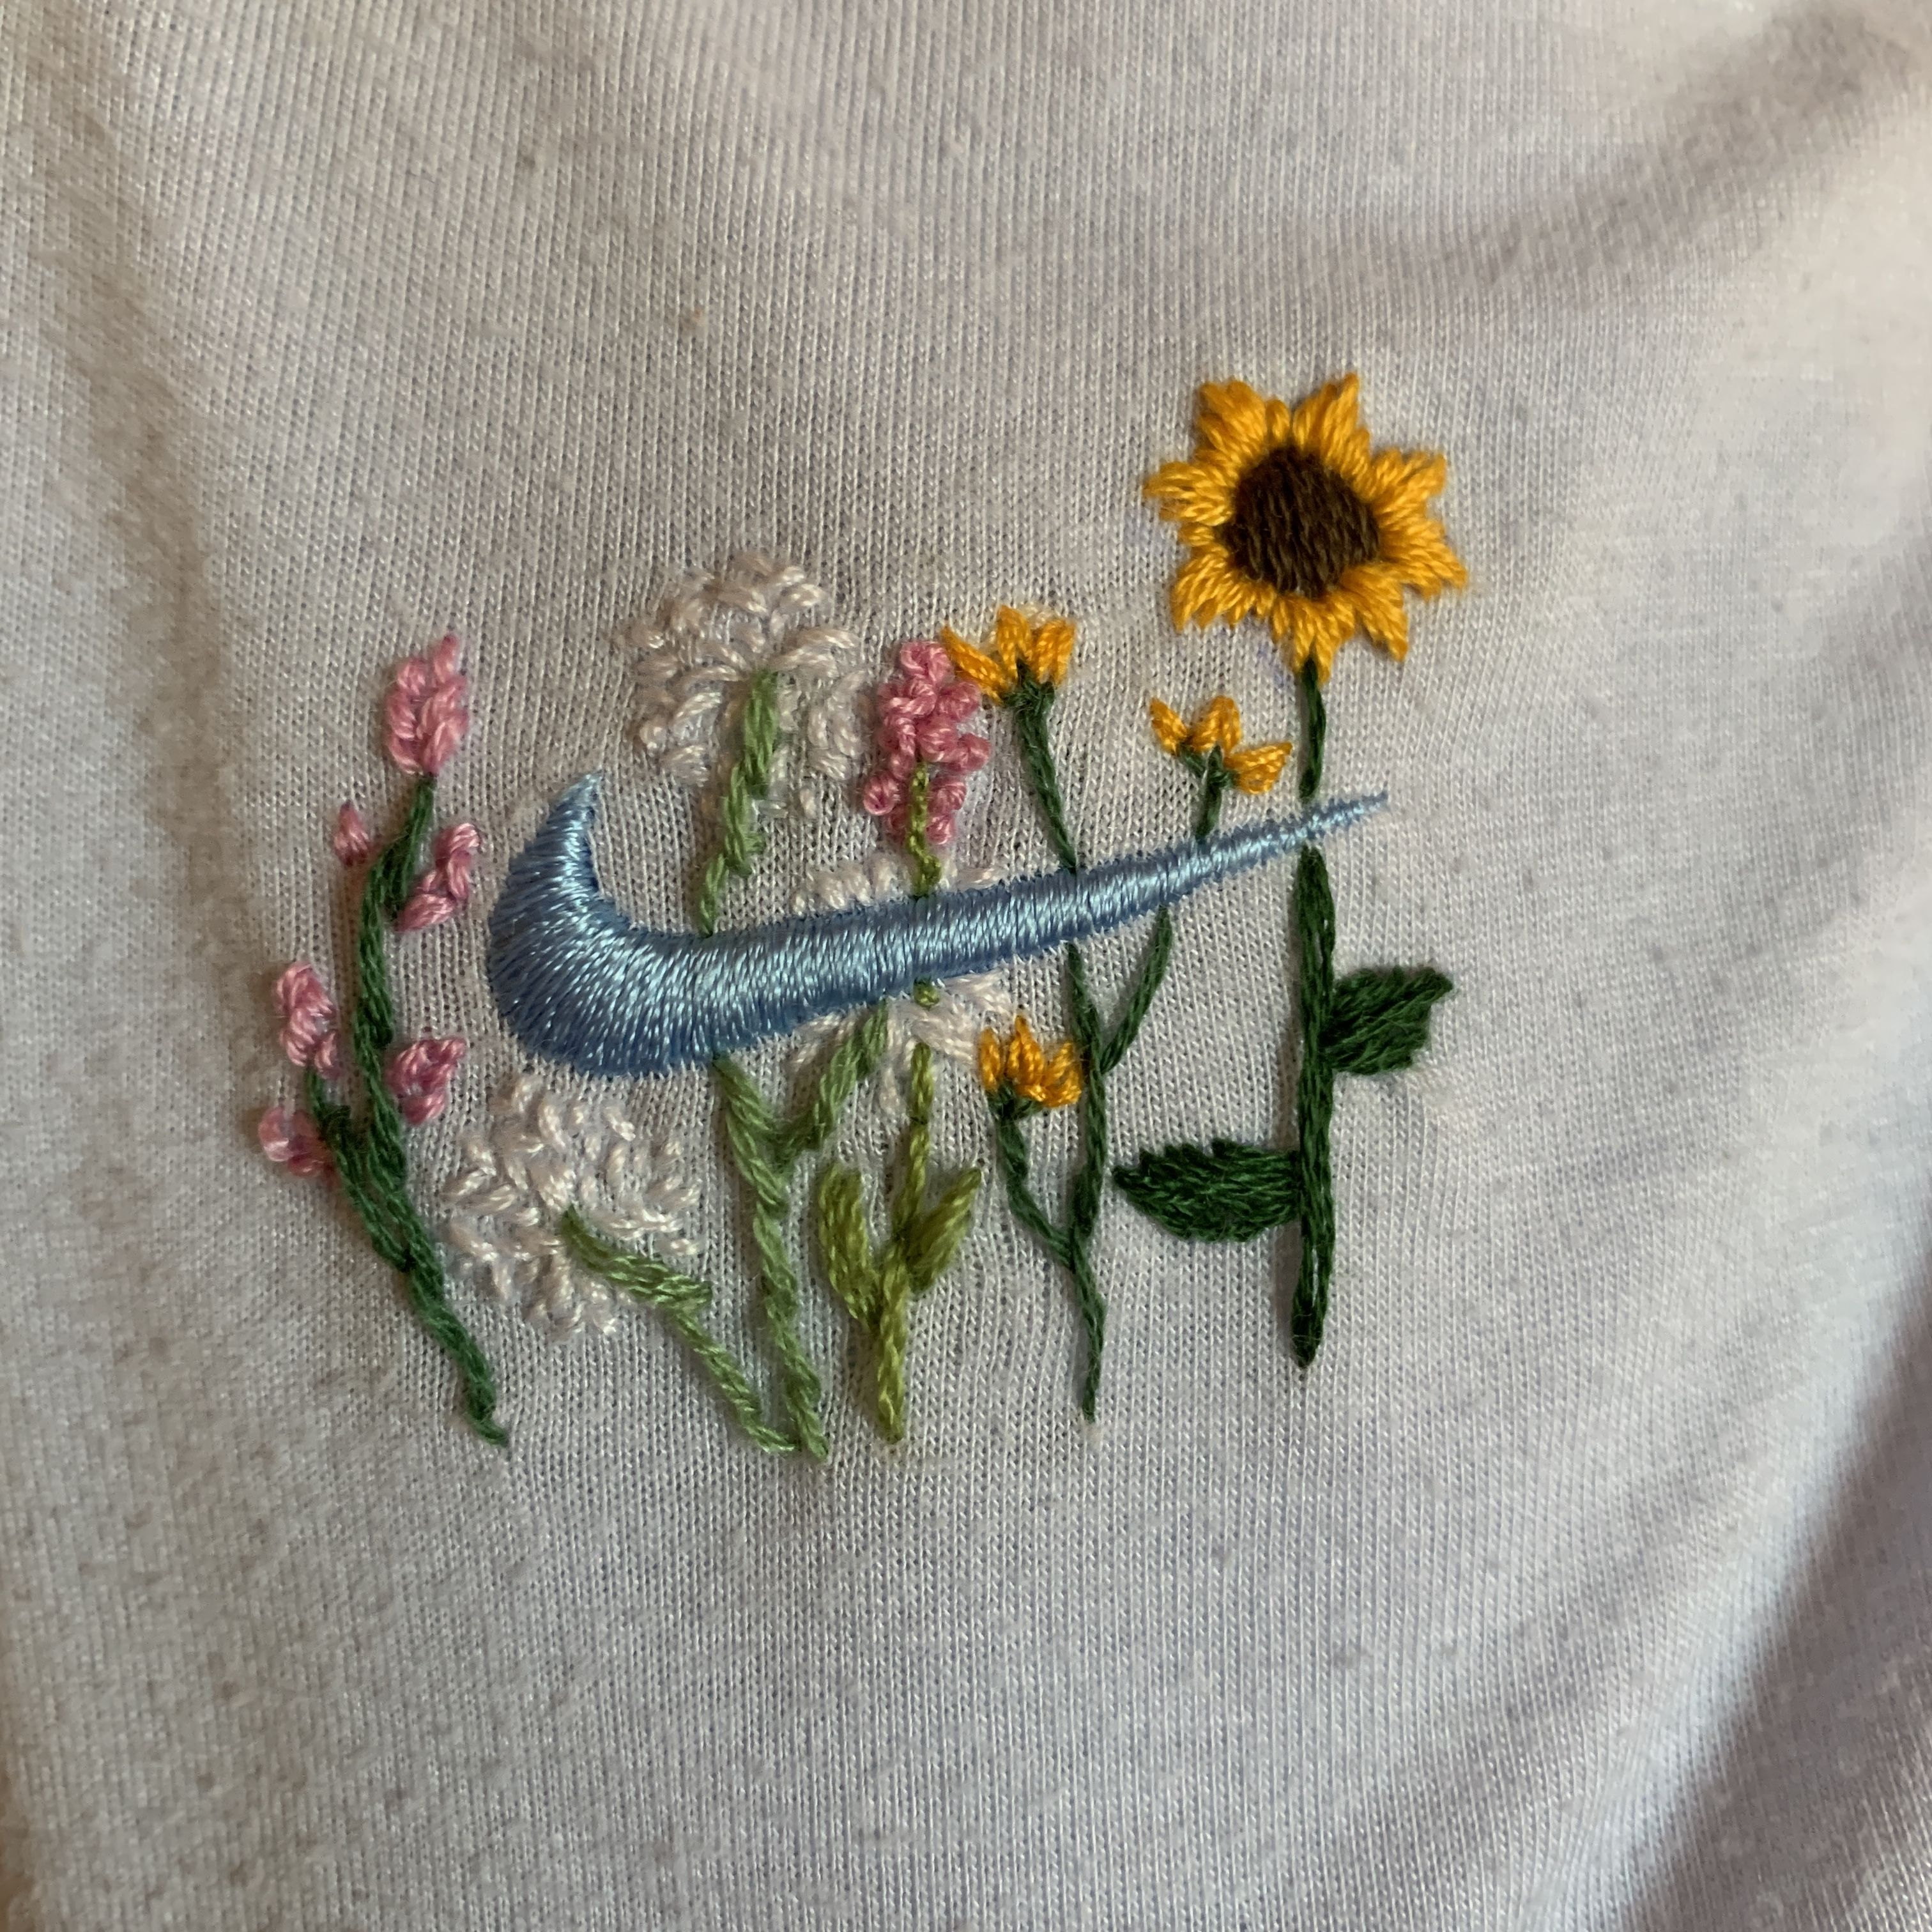 Embroidered Nike In 2020 Sewing Embroidery Designs Hand Embroidery Patterns Simple Embroidery Designs